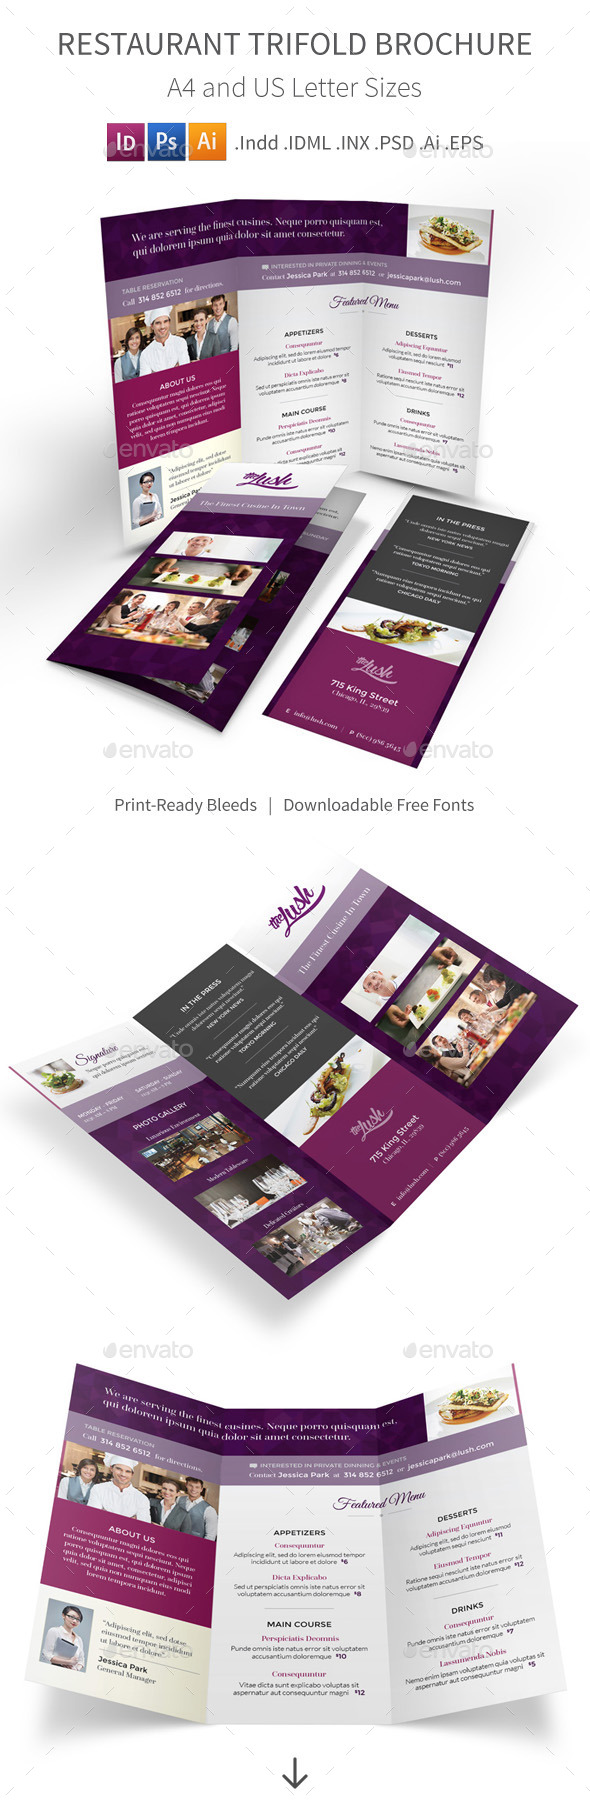 GraphicRiver Restaurant Trifold Brochure 9257463